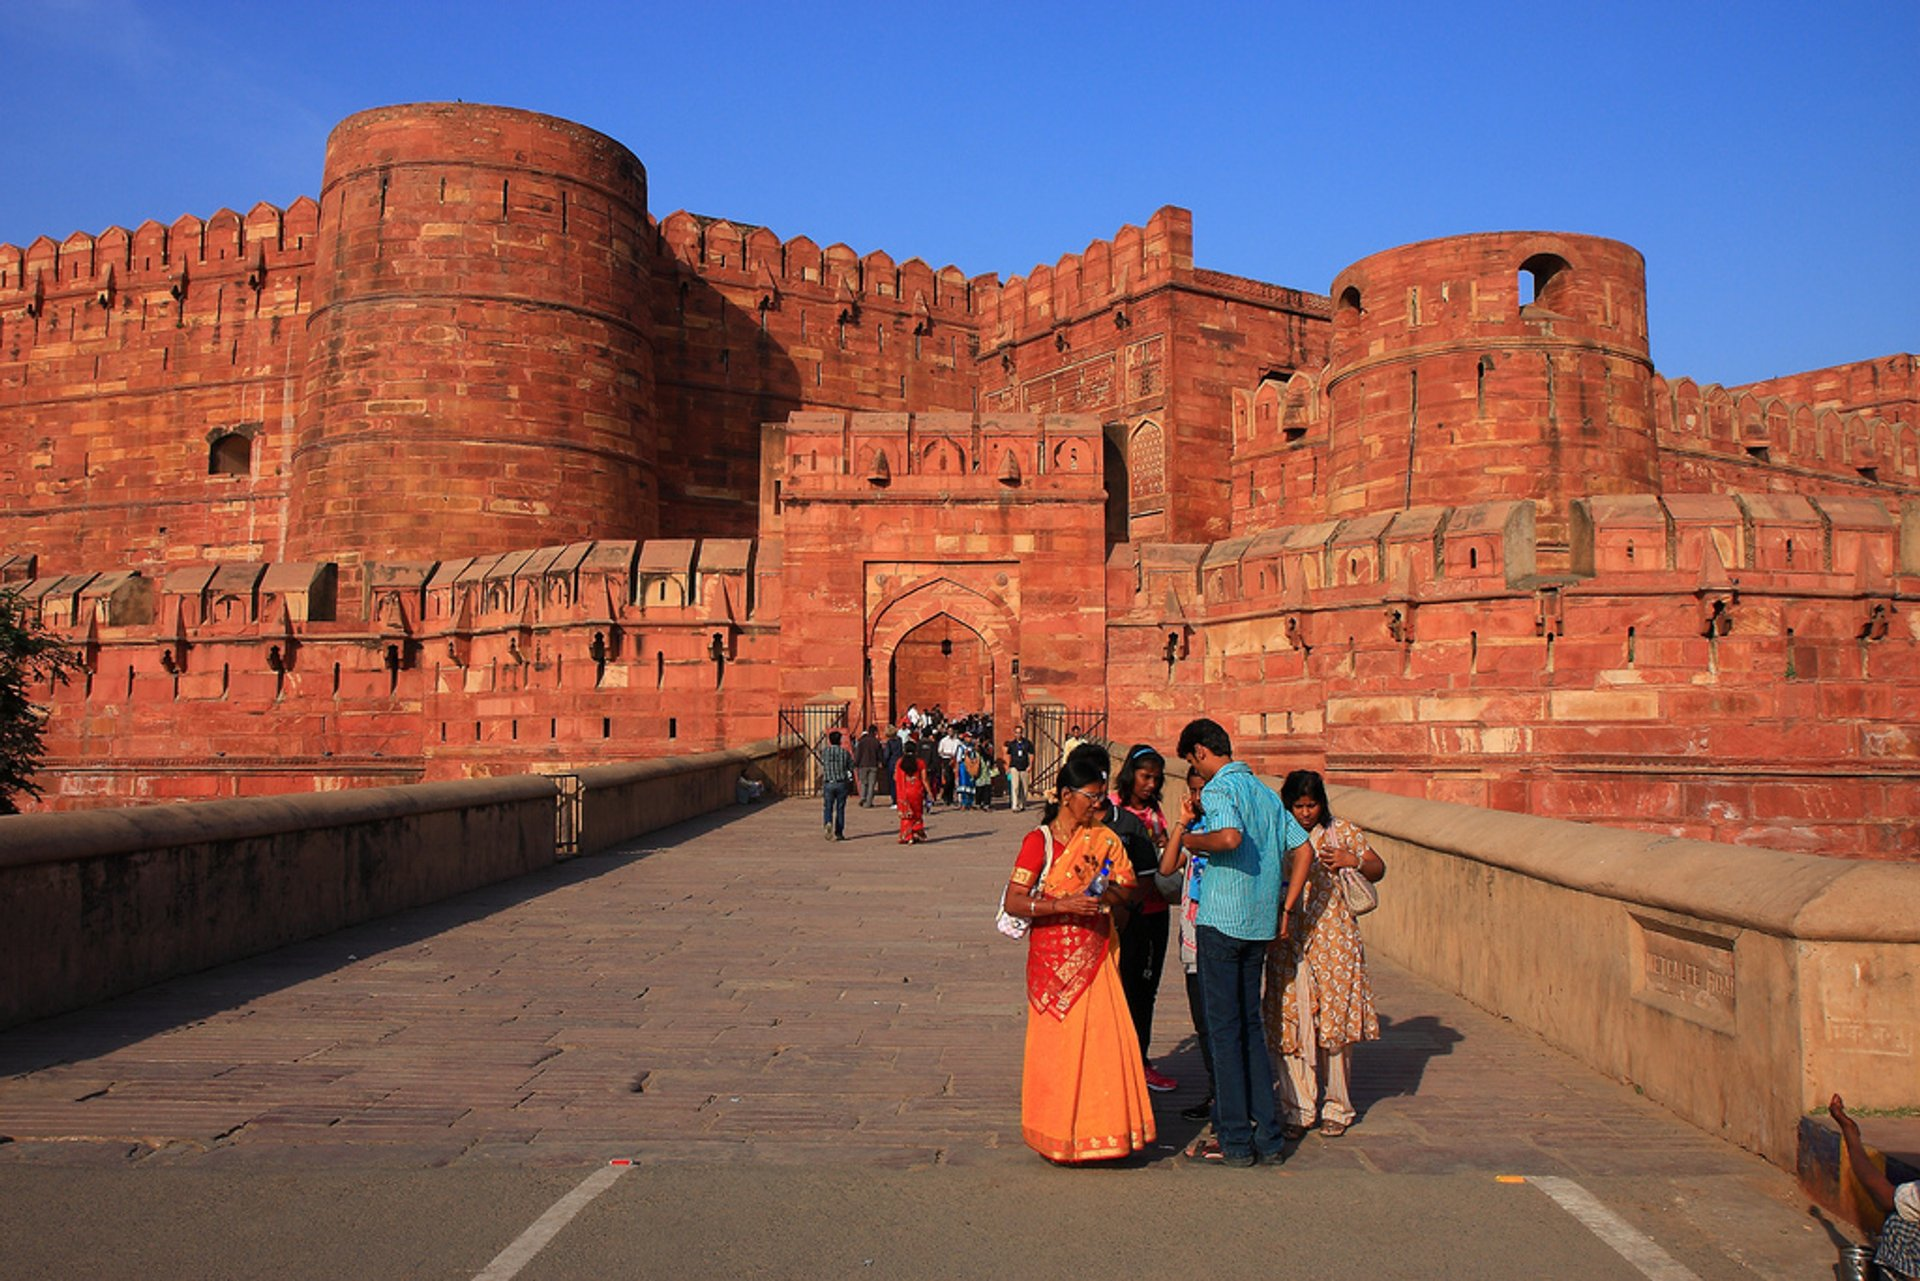 Agra Fort in Taj Mahal and Agra  2020 - Best Time